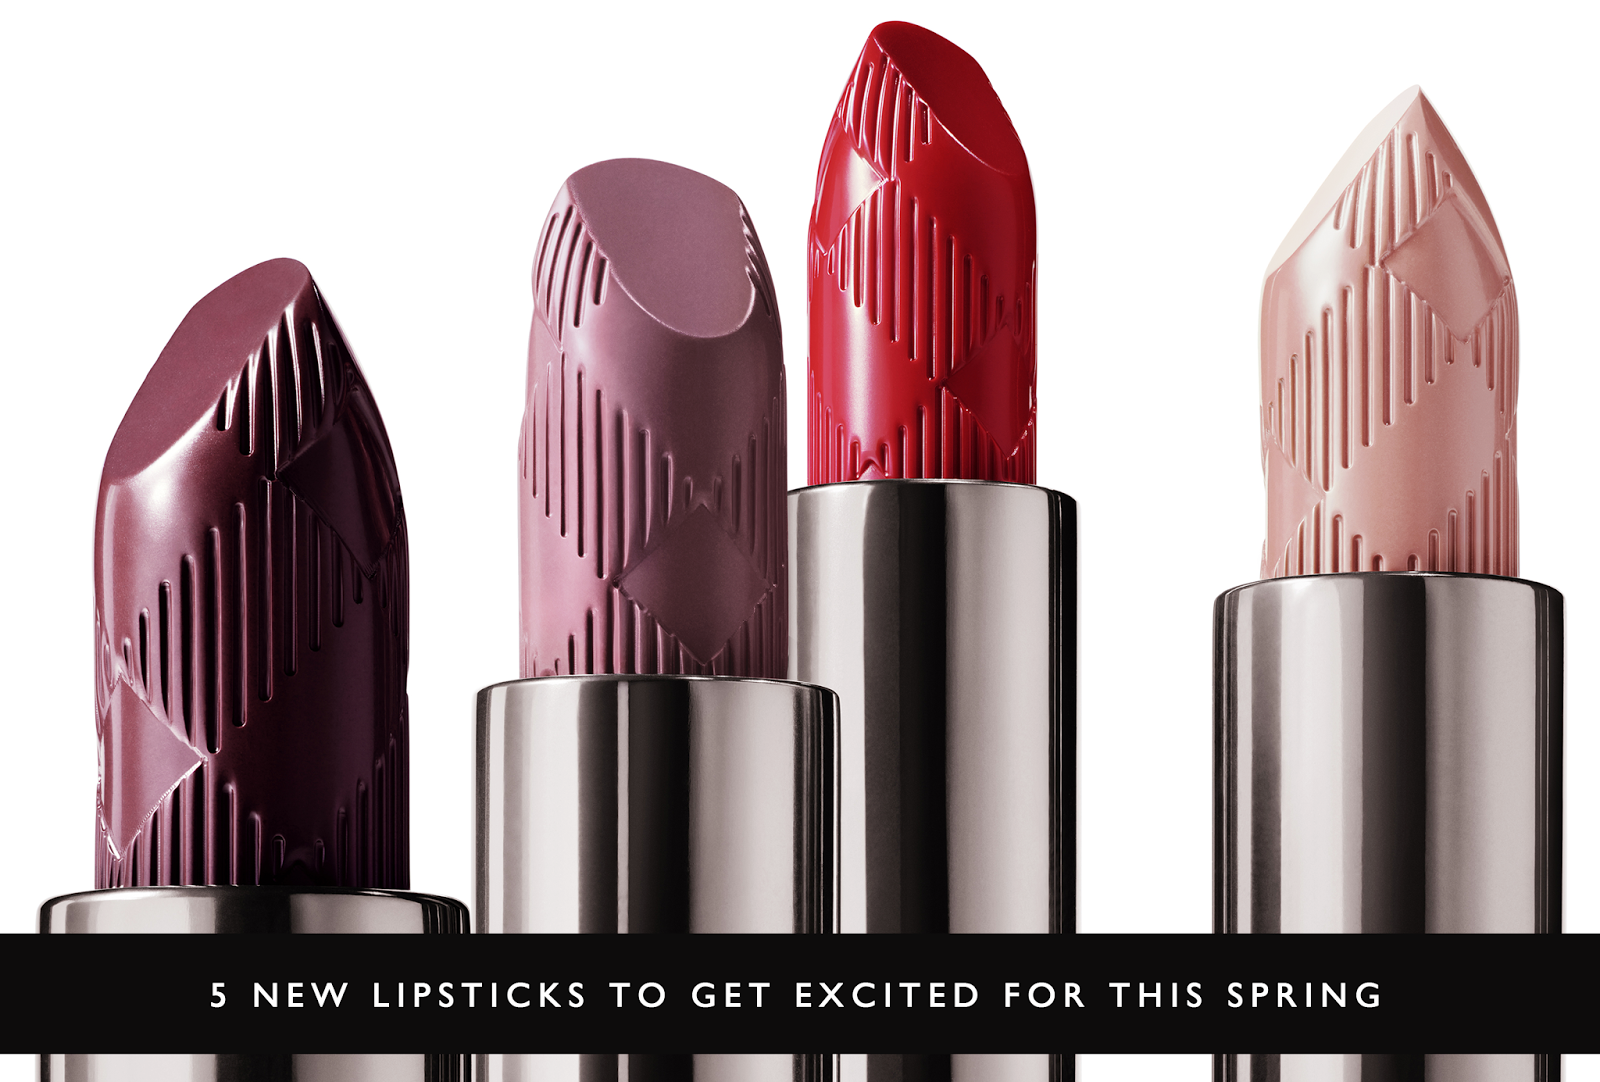 lipstick launch spring 2015, new lipsticks spring 2015, burberry kisses lipstick